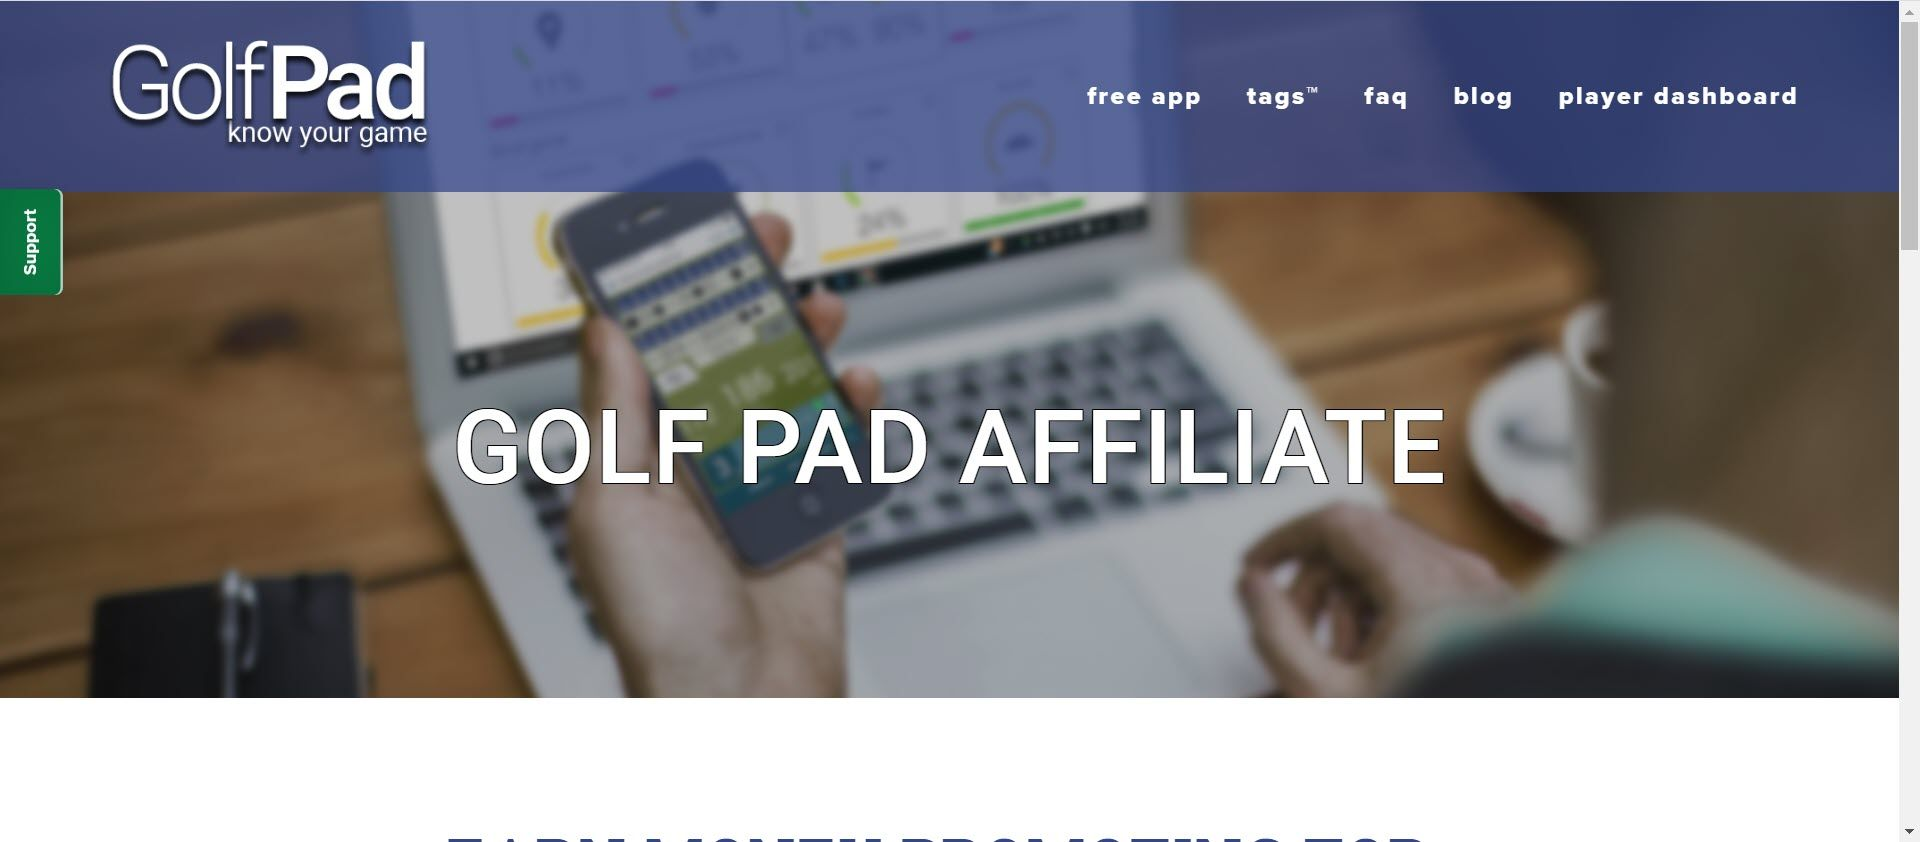 Best Golf Affiliate Programs - Golf Pad Affiliate